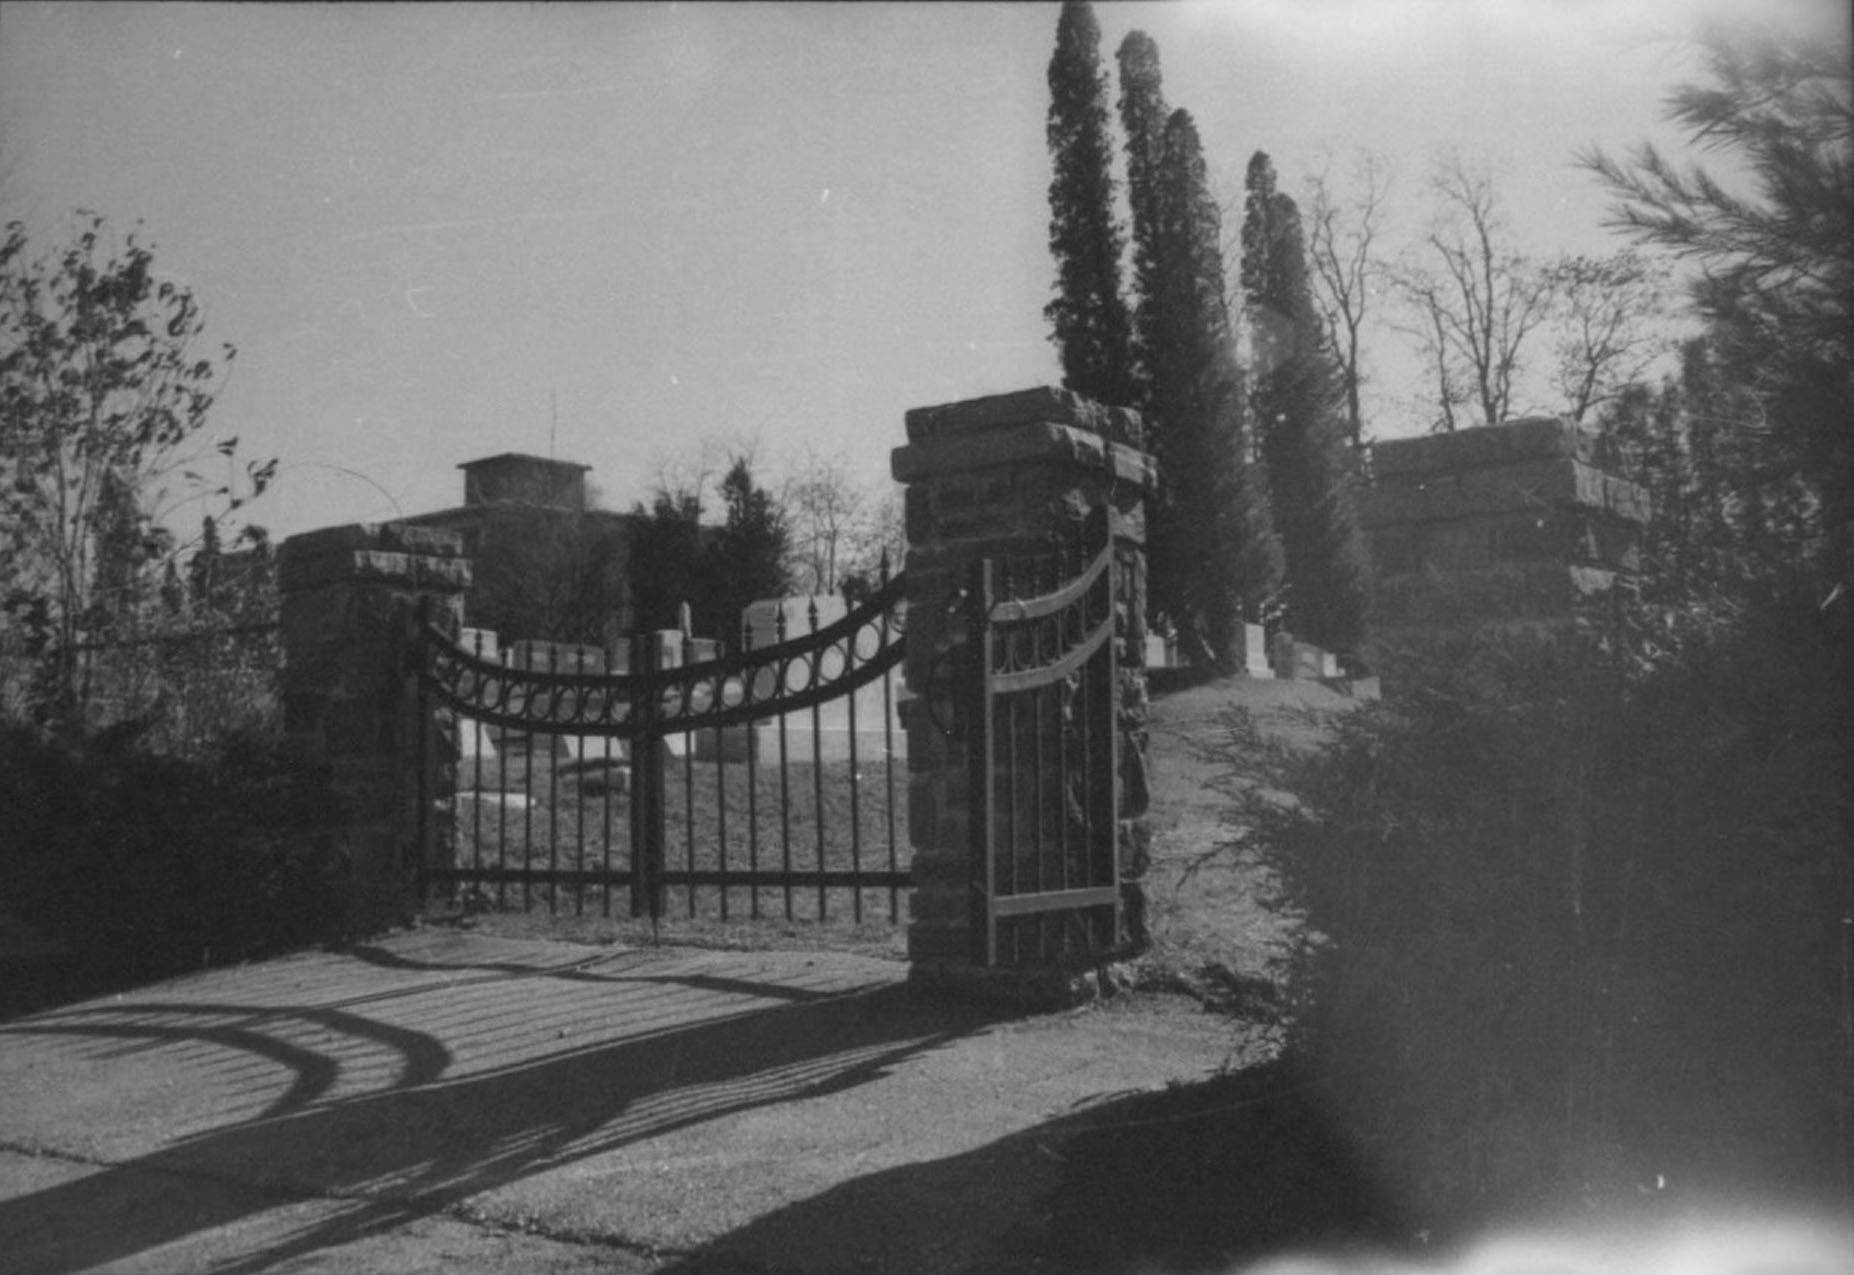 Photograph of the Town of Boone Cemetery, AC.112: Watauga County Historical Site Survey Records, W. L. Eury Appalachian Collection, Appalachian State University, Boone, North Carolina, USA.